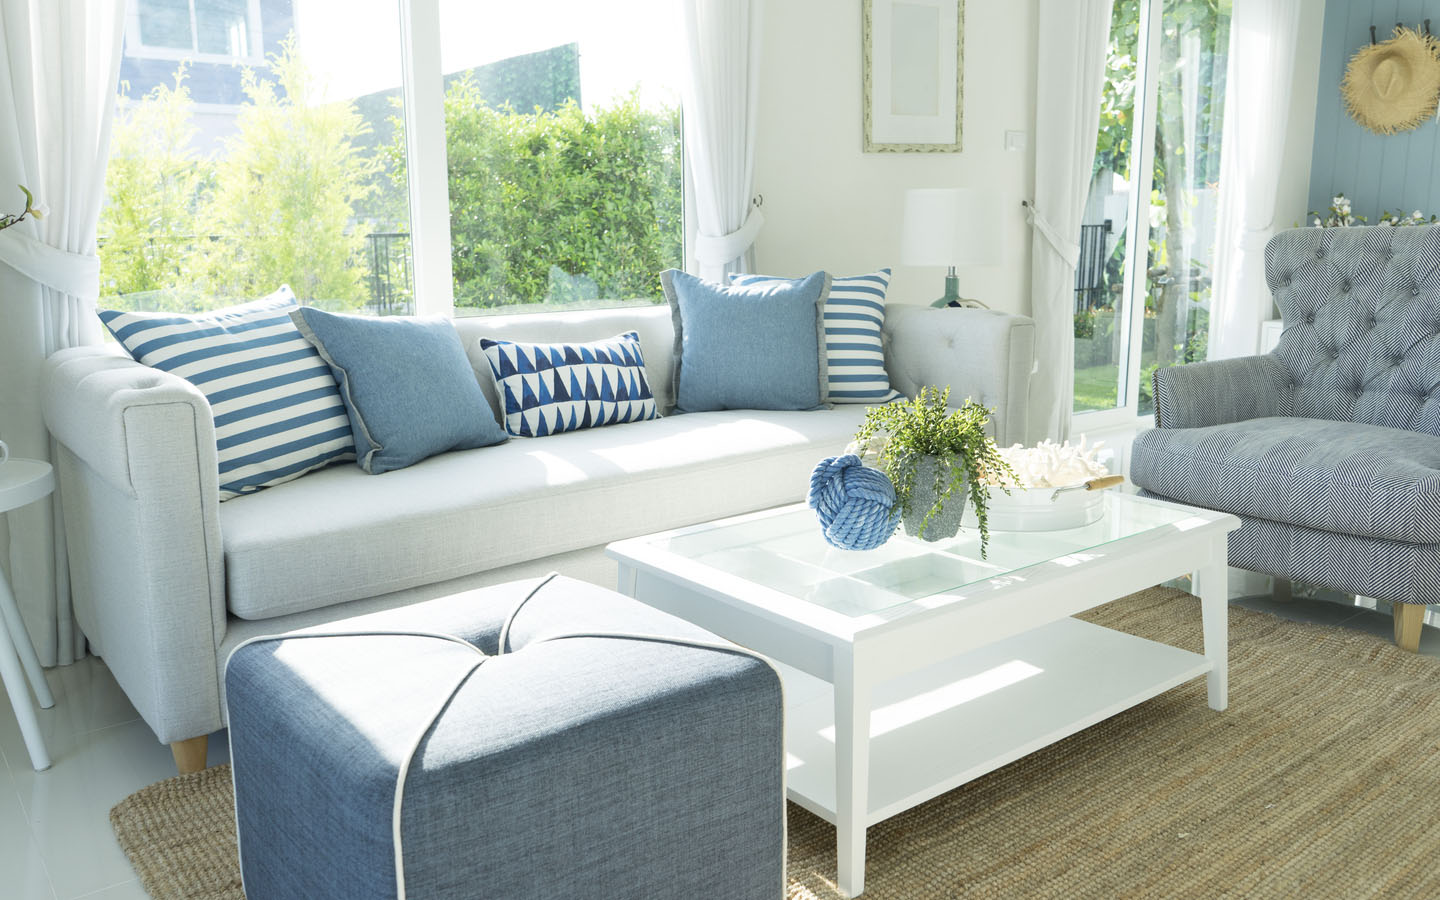 Sofa colors and sizes must always match that of the room